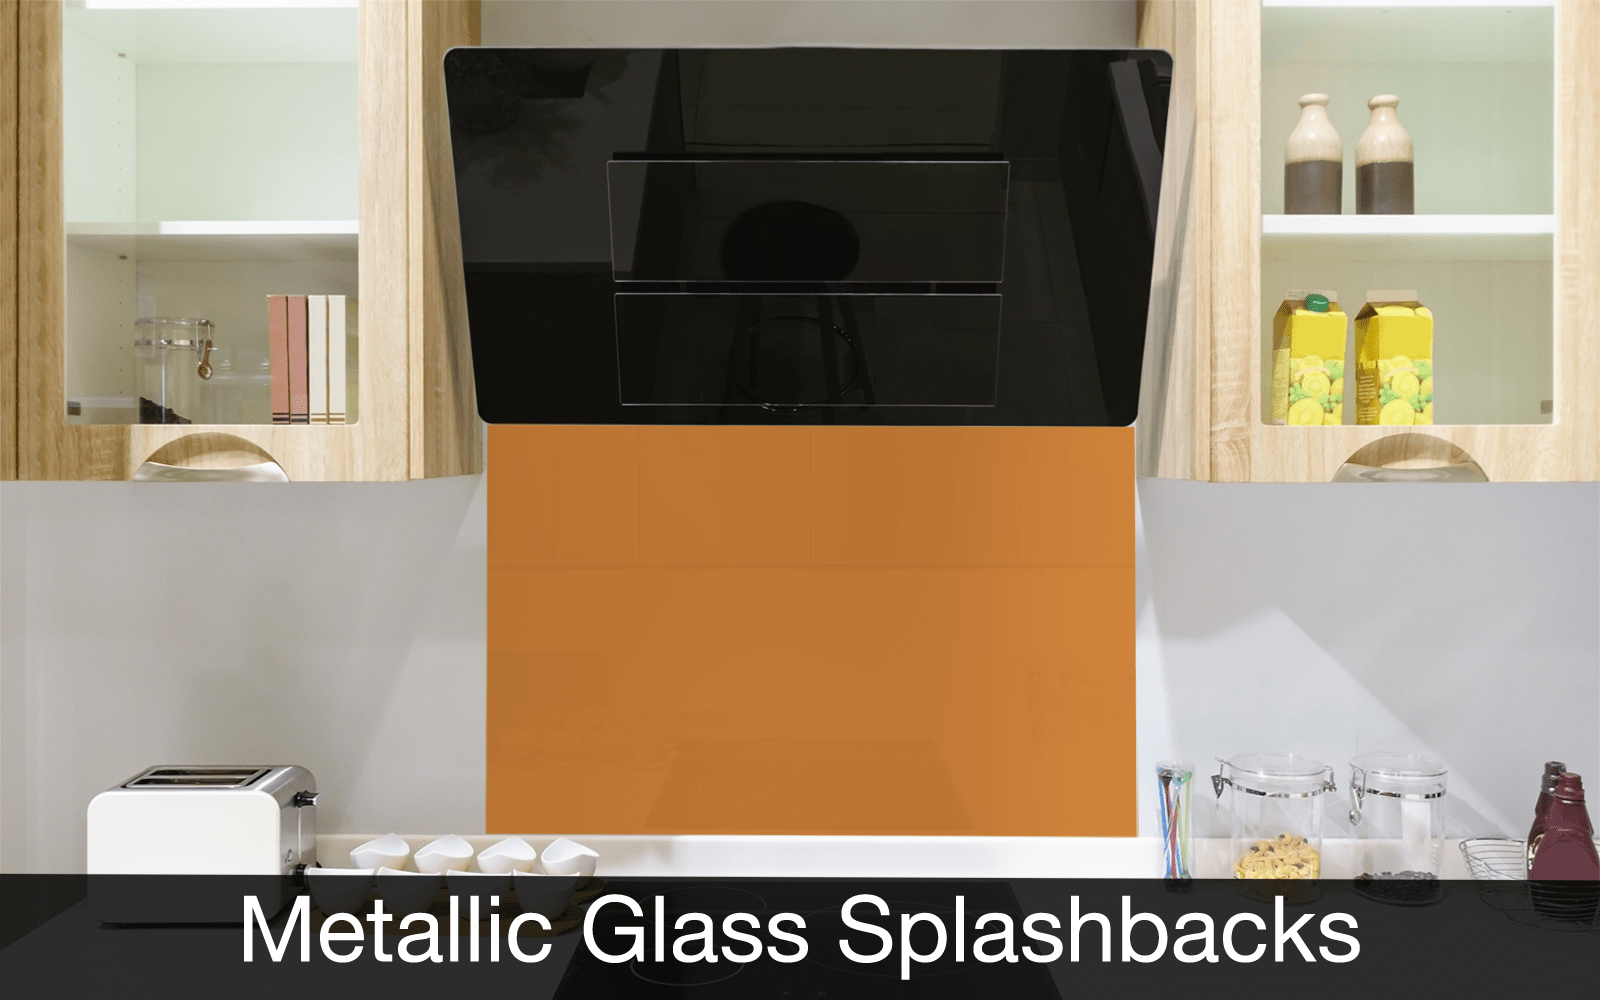 Metallic Glass Splashbacks